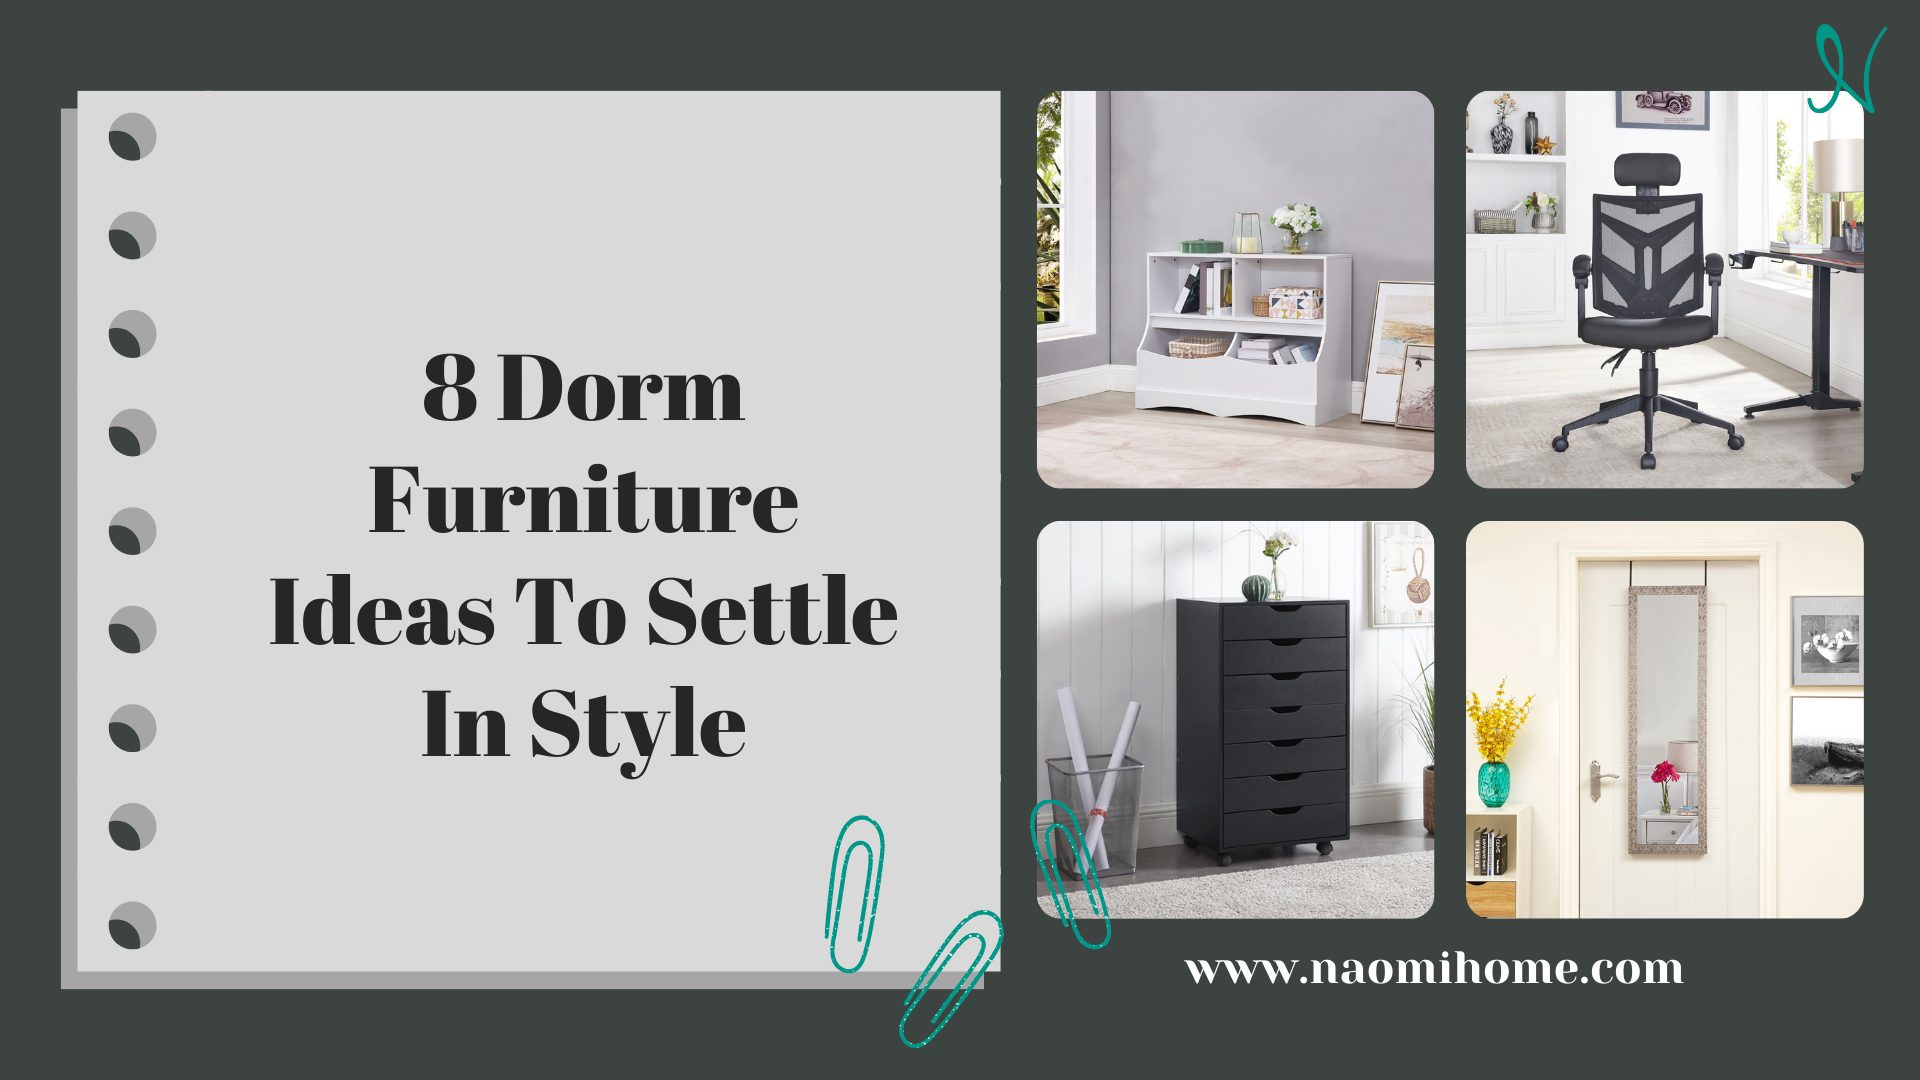 8 Dorm Furniture Ideas To Settle In Style